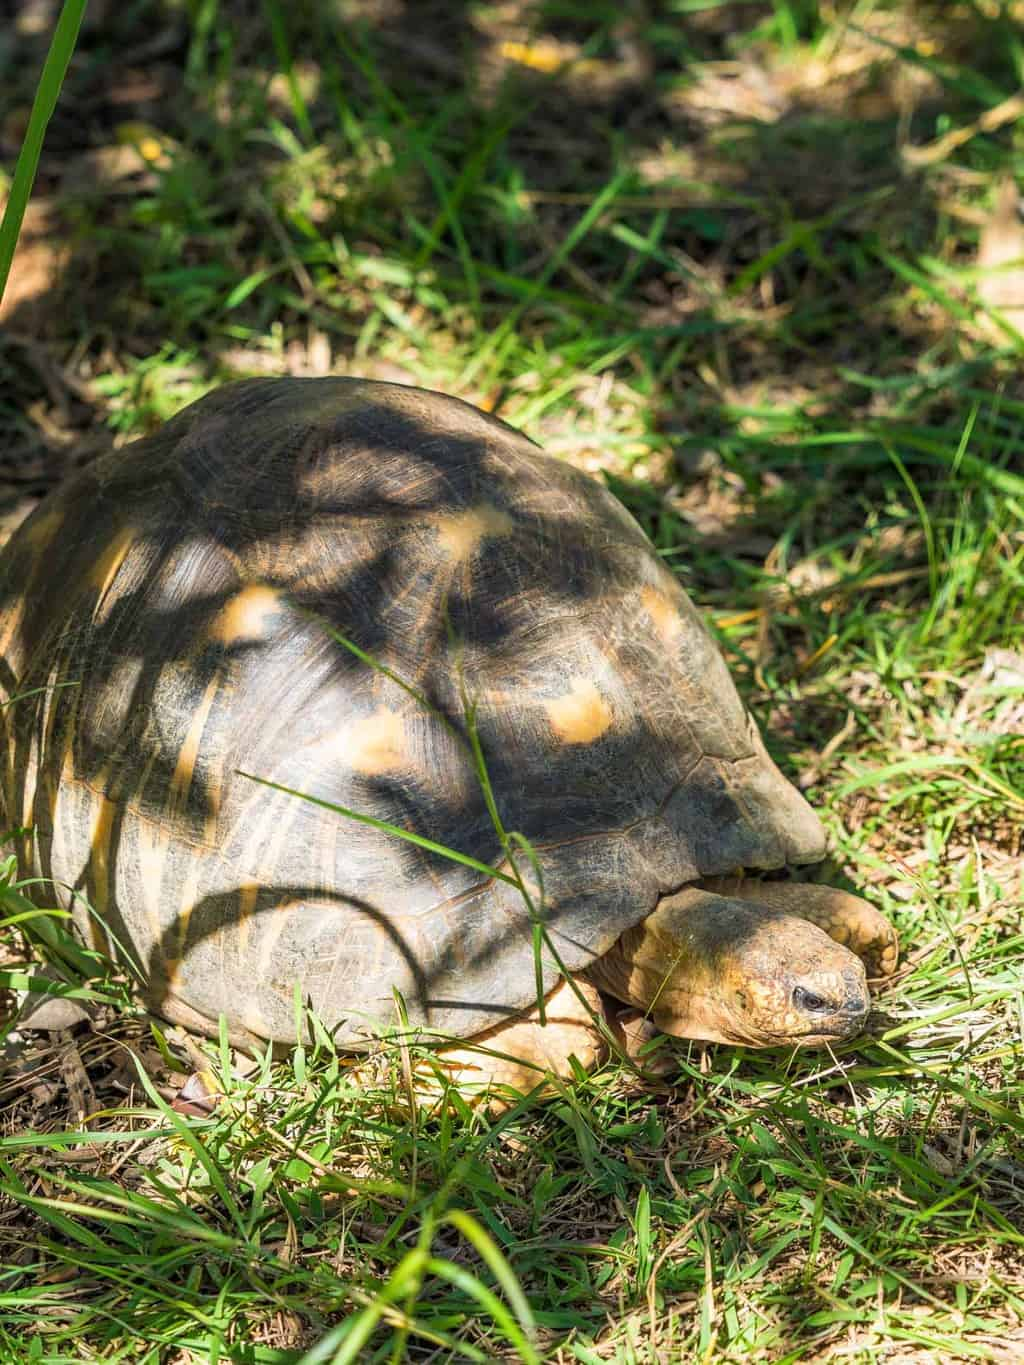 One of many Radiated Tortoise freeley walking around the park, the Radiated tortoise is Critically Endangered